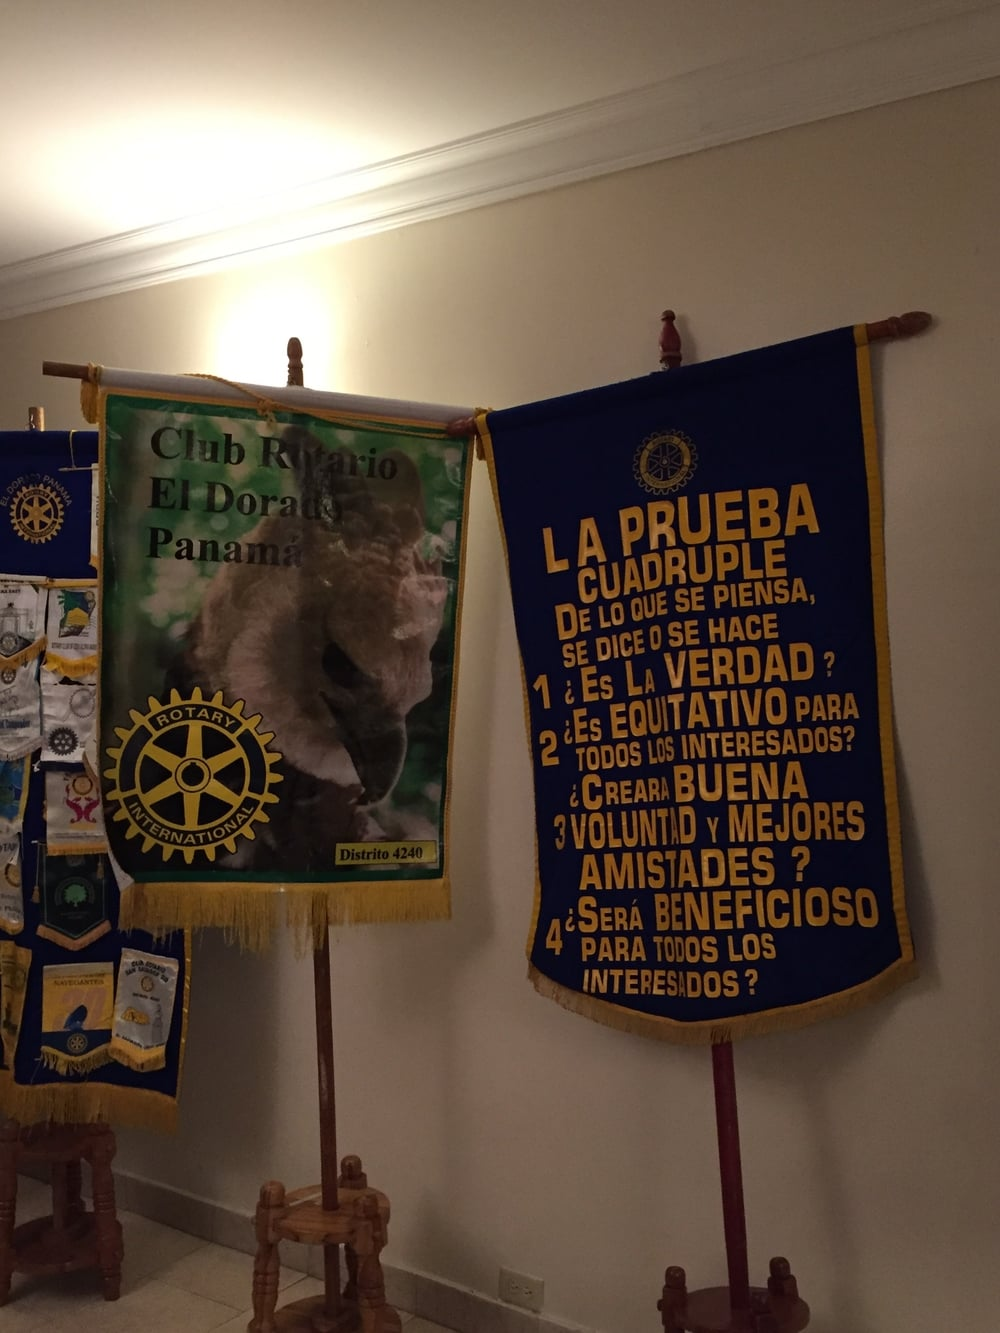 Even though members of the team don't speak Spanish we felt right at home with the same traditions at the El Dorado Rotary Club.